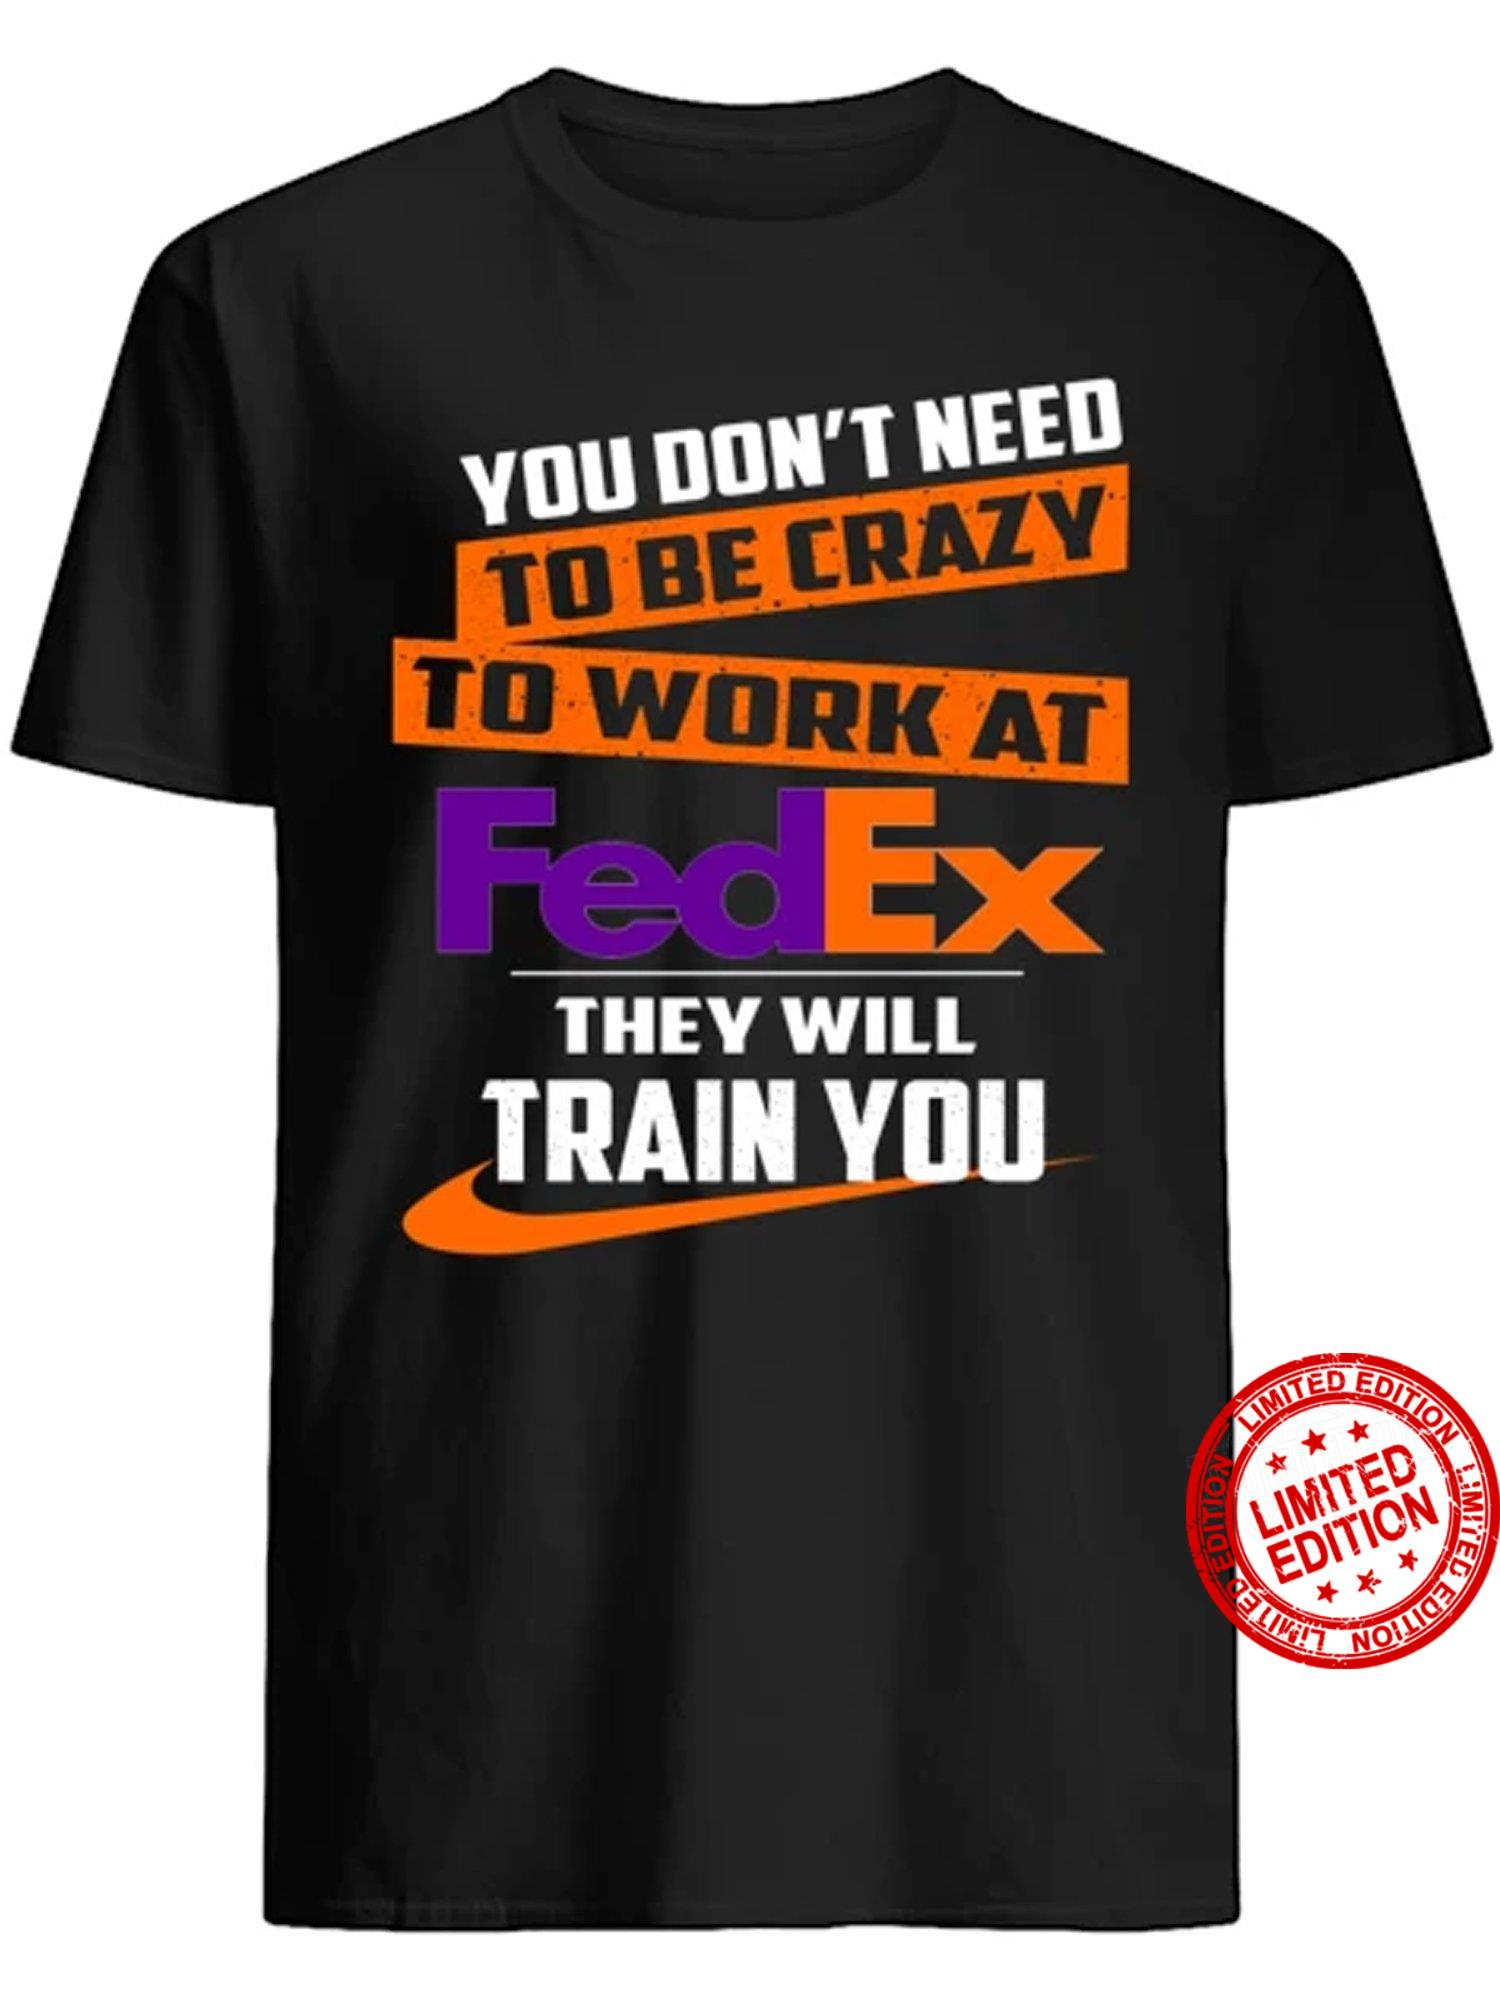 You Don't Need To Be Crazy To Work At Fedex They Will Train You Shirt